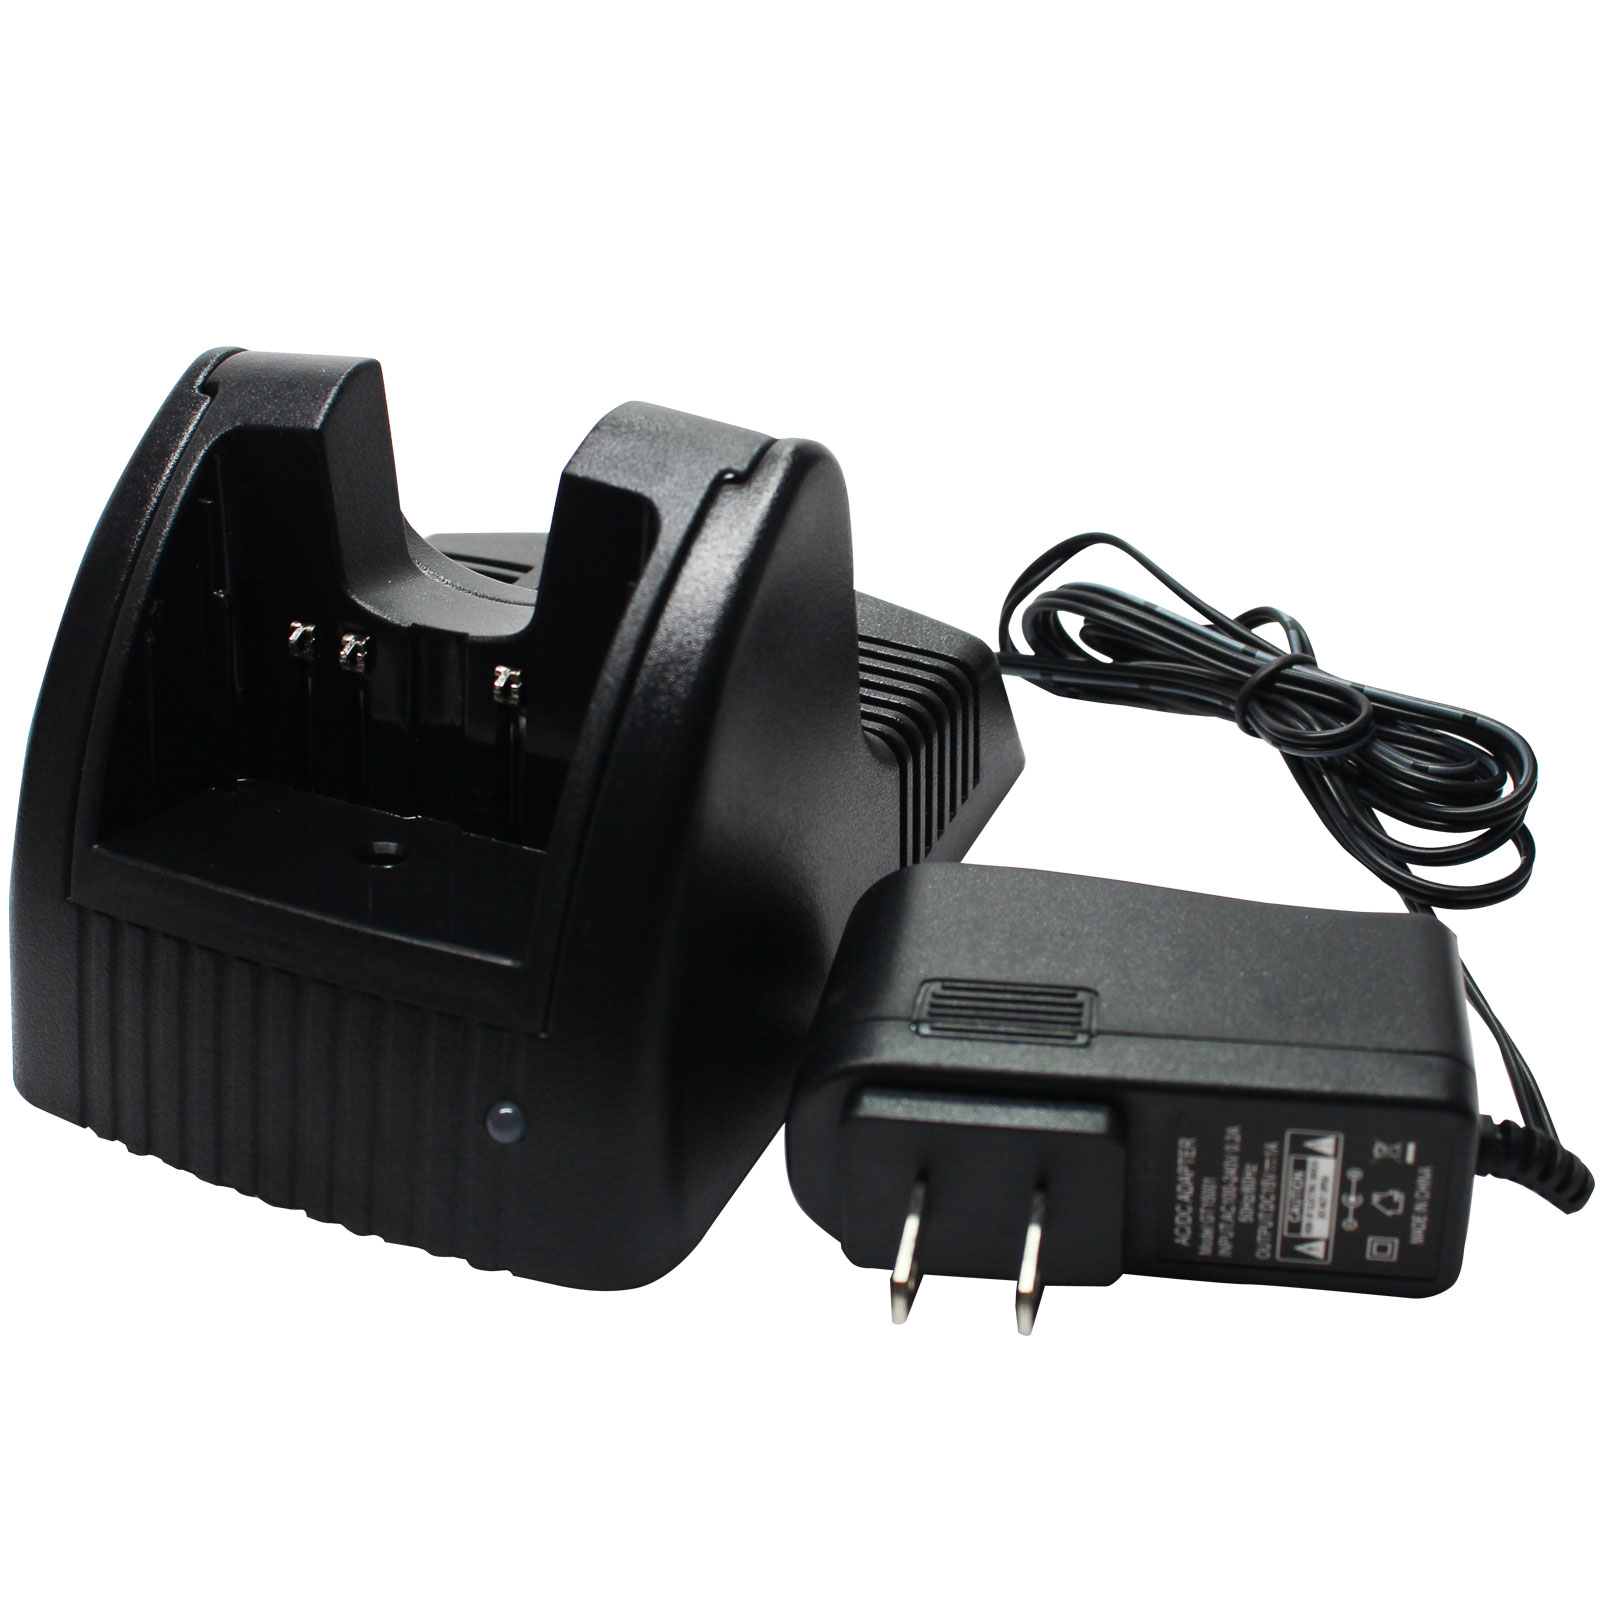 Yaesu VX-150 Battery and Charger - Replacement for Yaesu FNB-83 Two-Way Radio Batteries and Chargers (1600mAh, 7.2V, NI-MH) - image 2 de 4